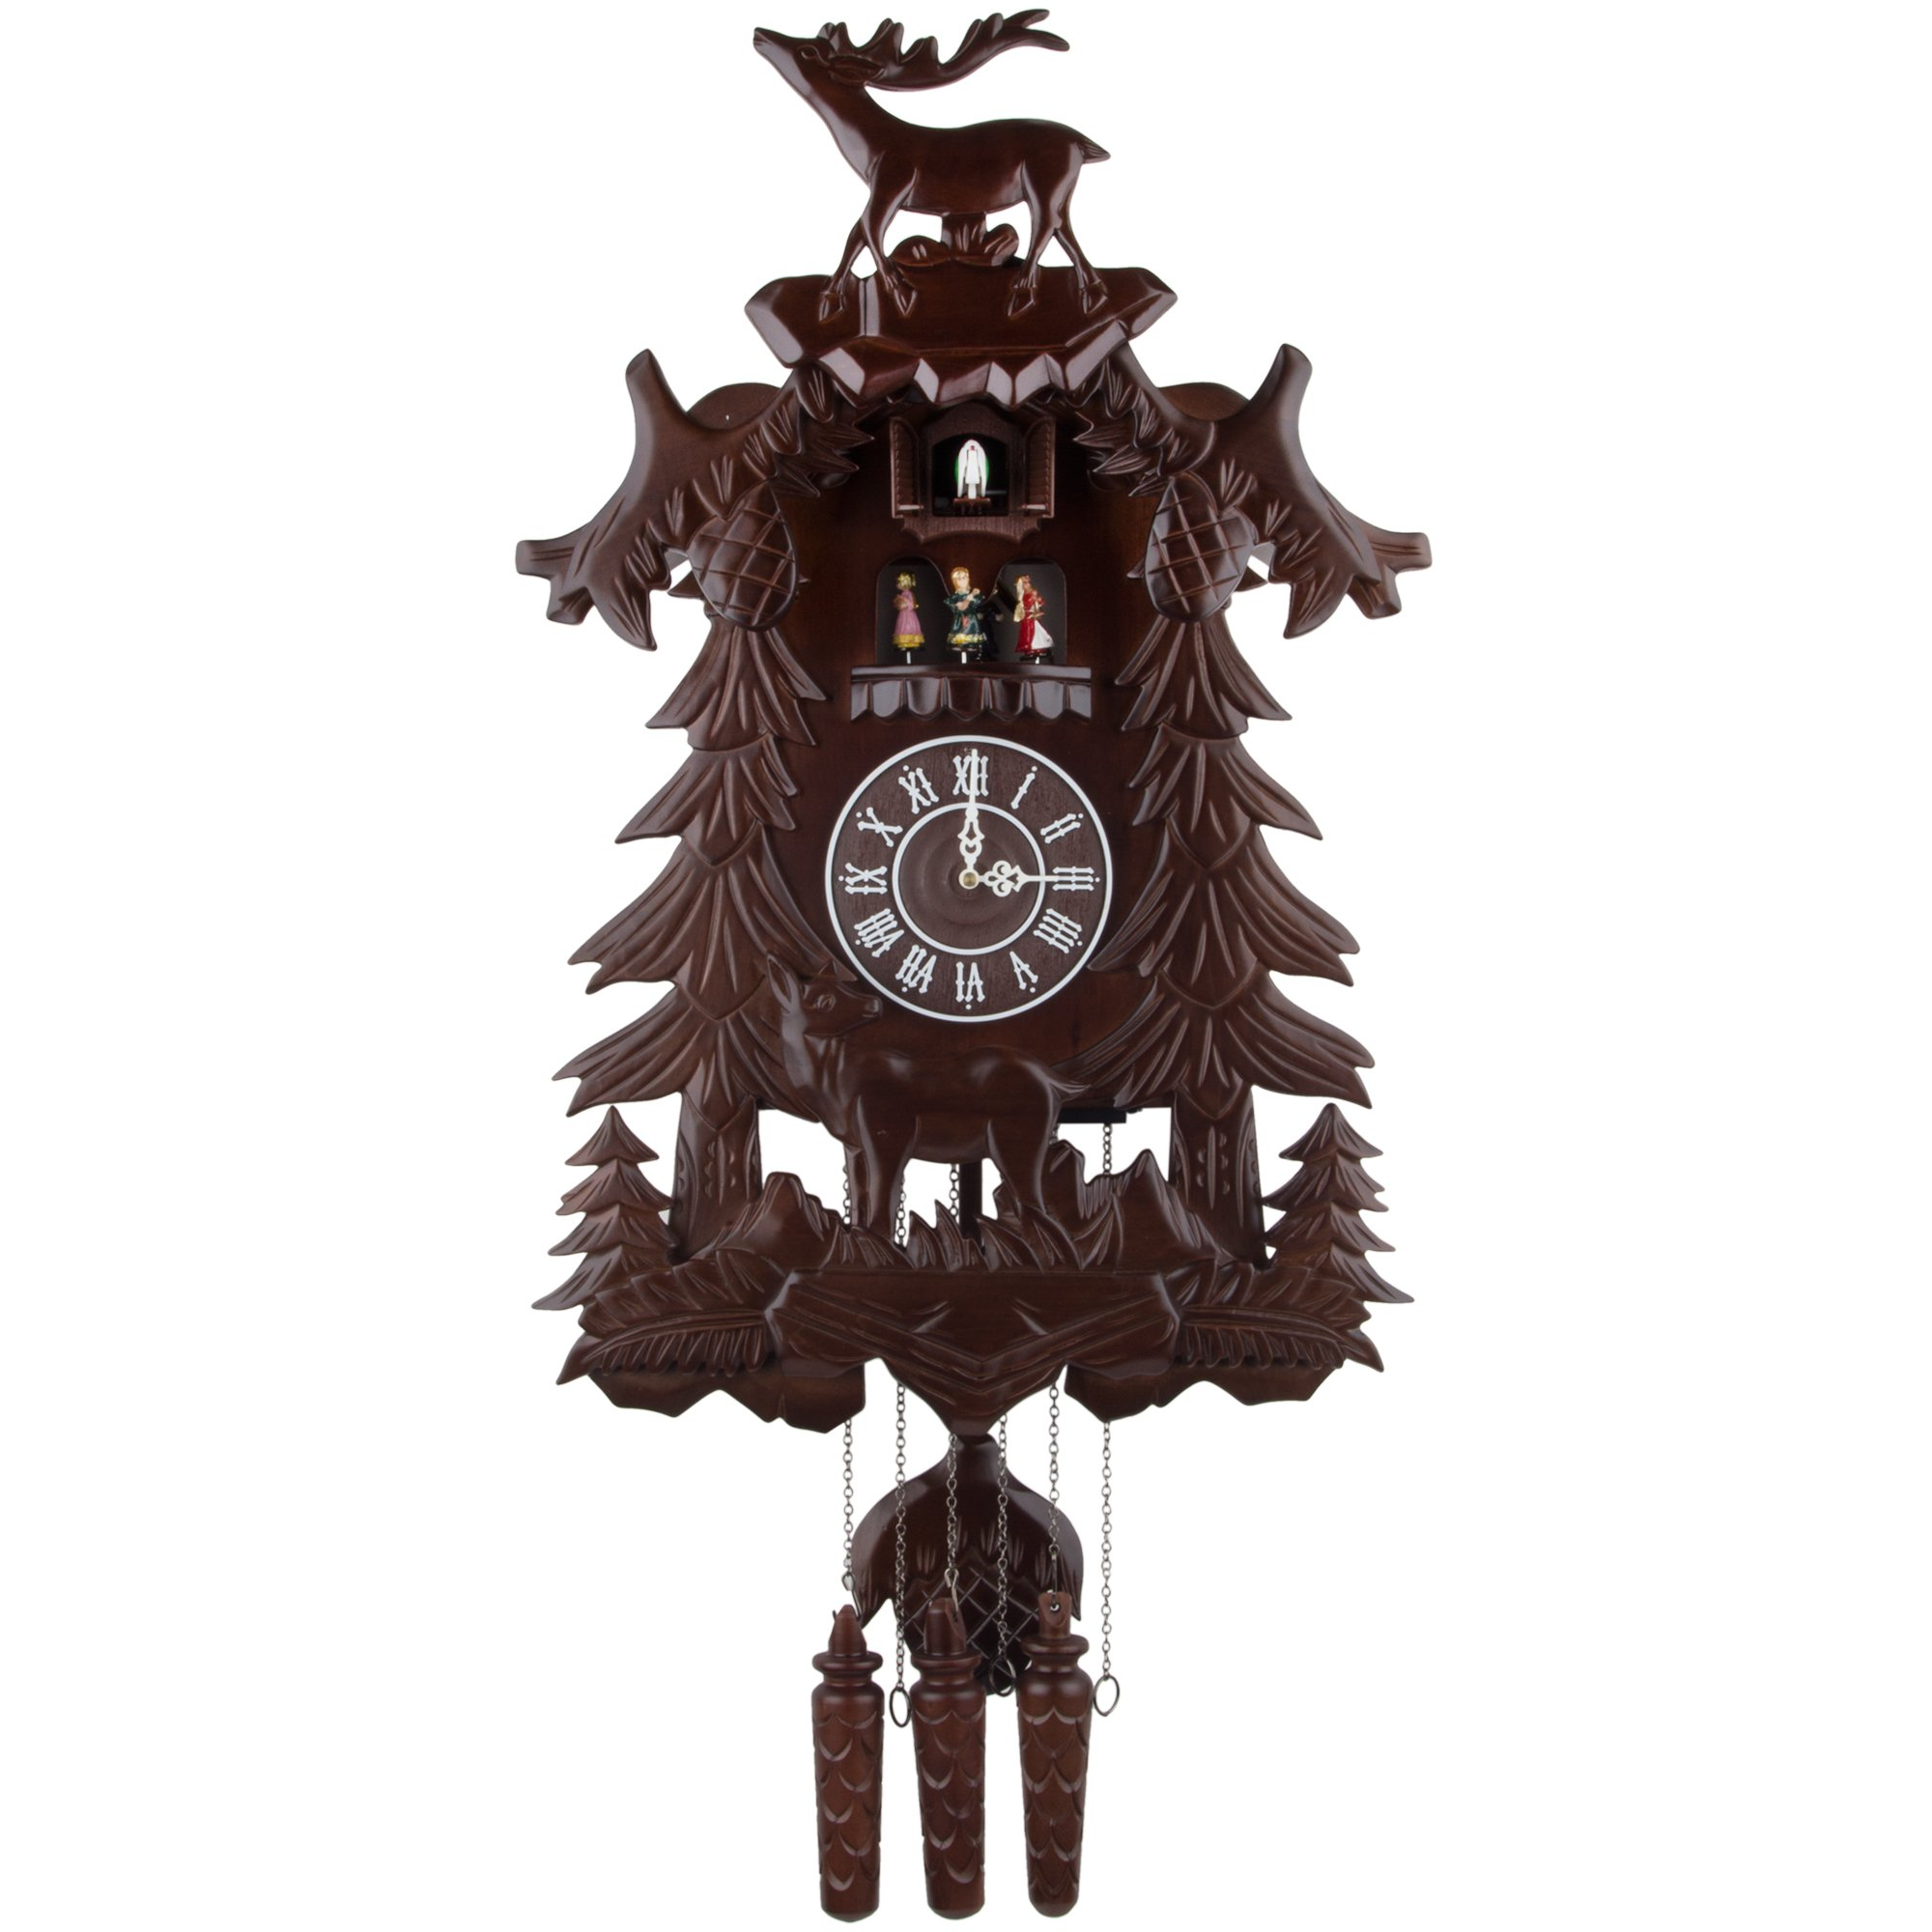 Vivid Large Deer Handcrafted Wood Cuckoo Clock with 4 Dancers Dancing with Music by Kendal